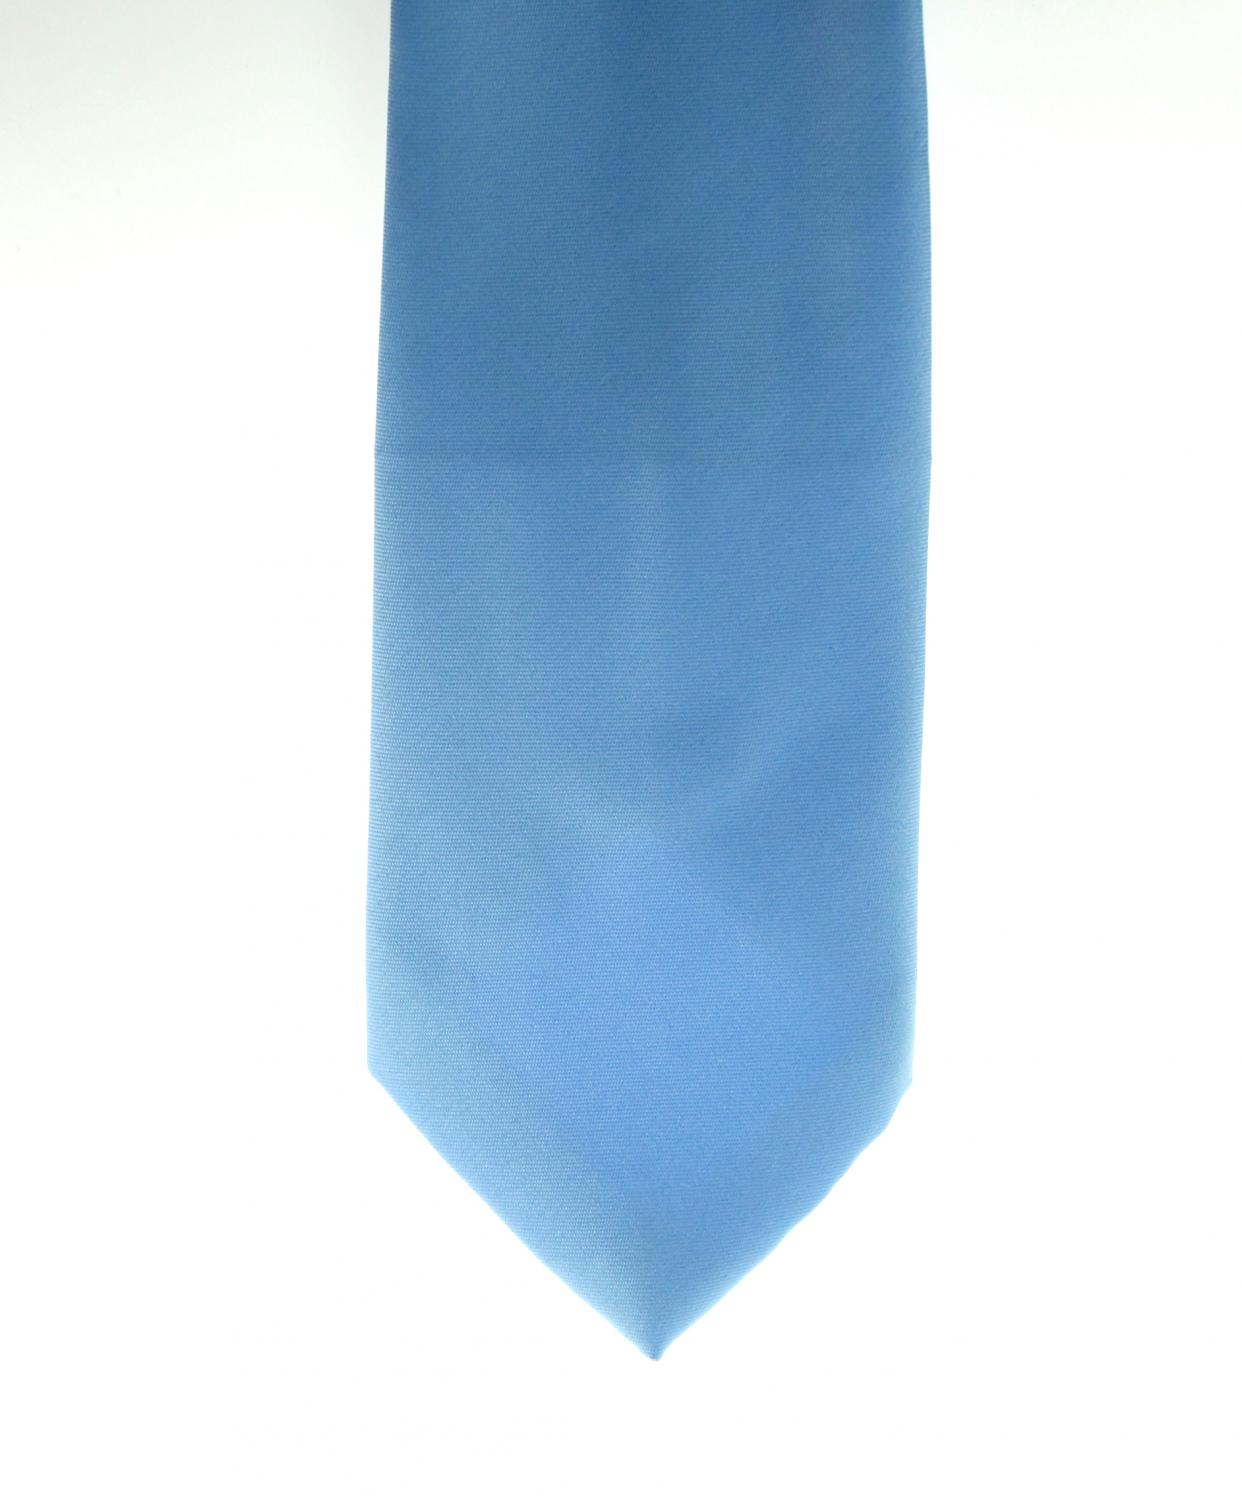 Adults Tie Plain Satin